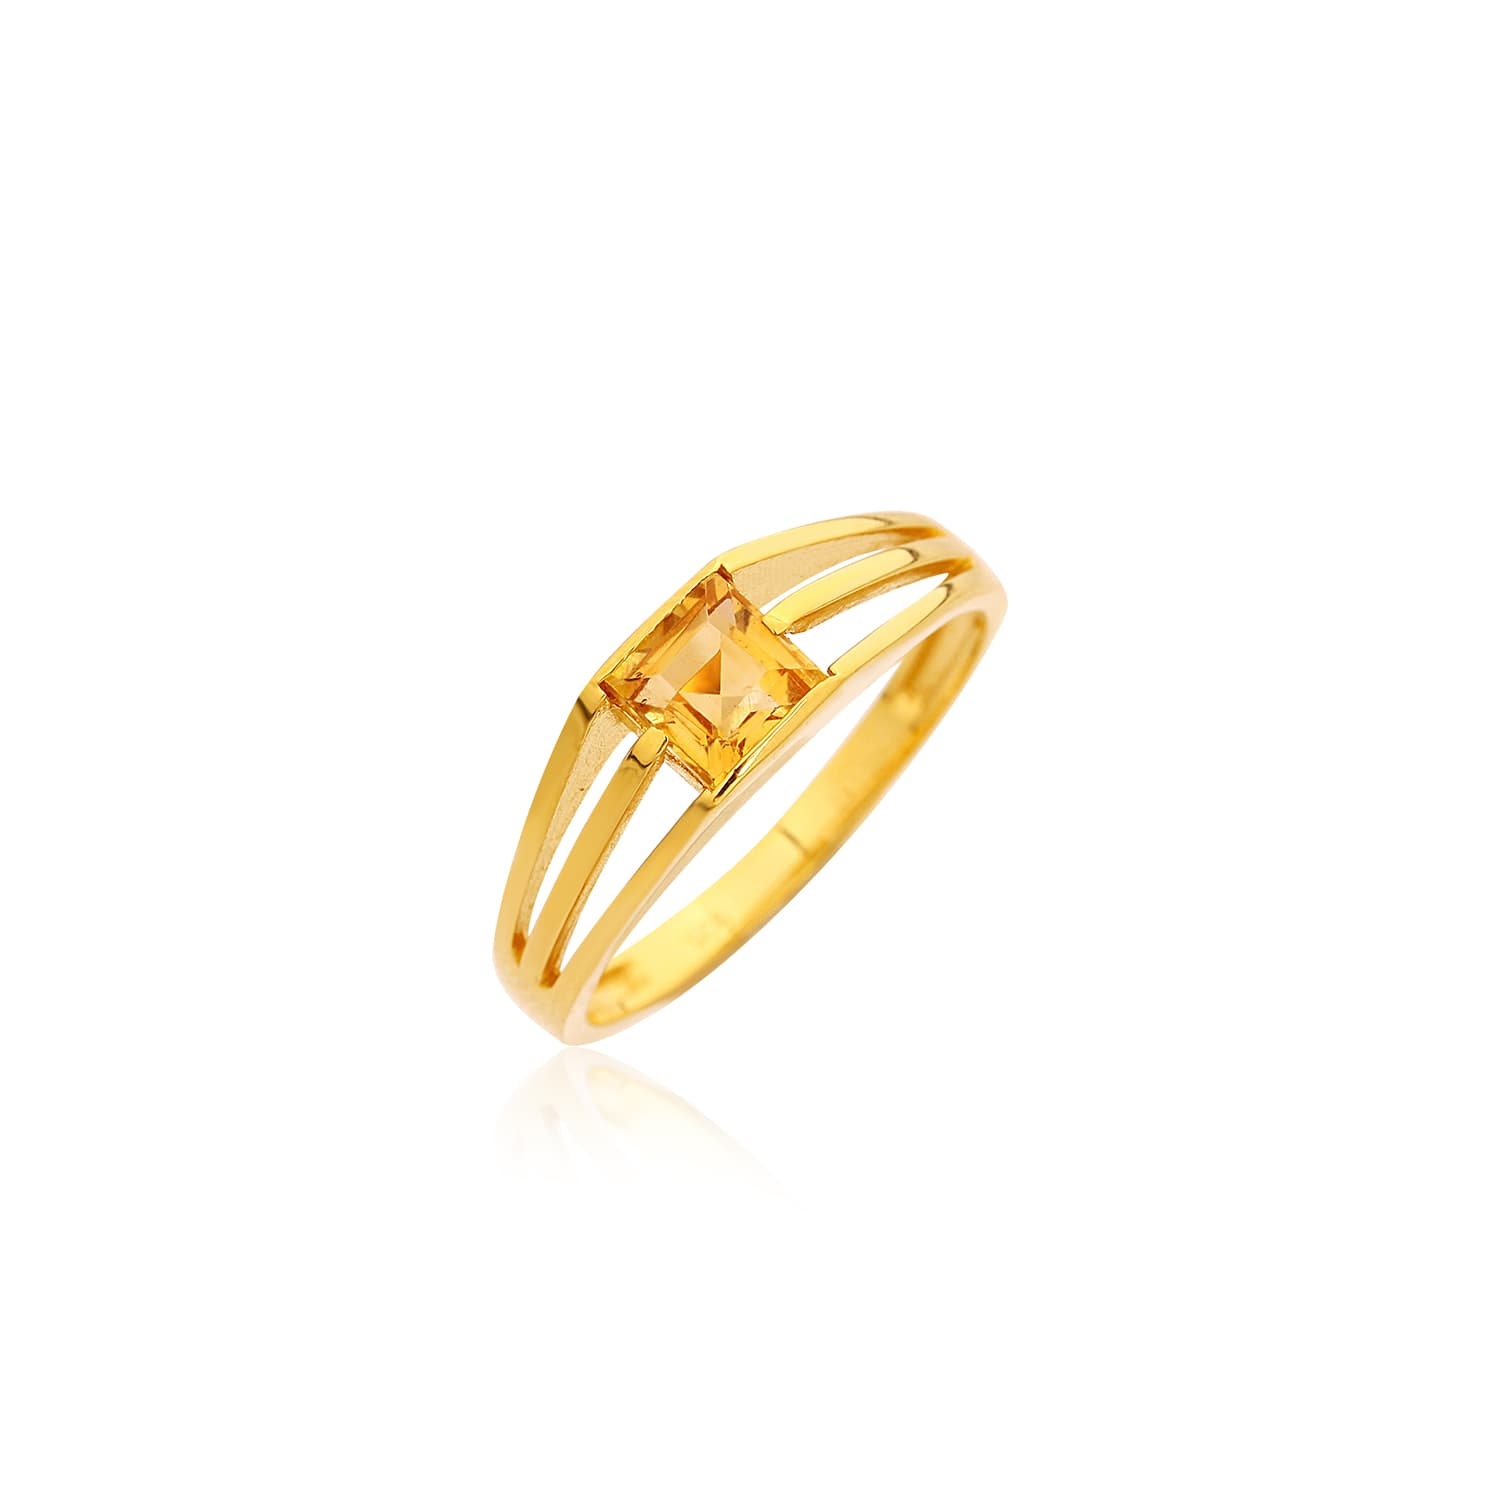 BETH CITRIN RING